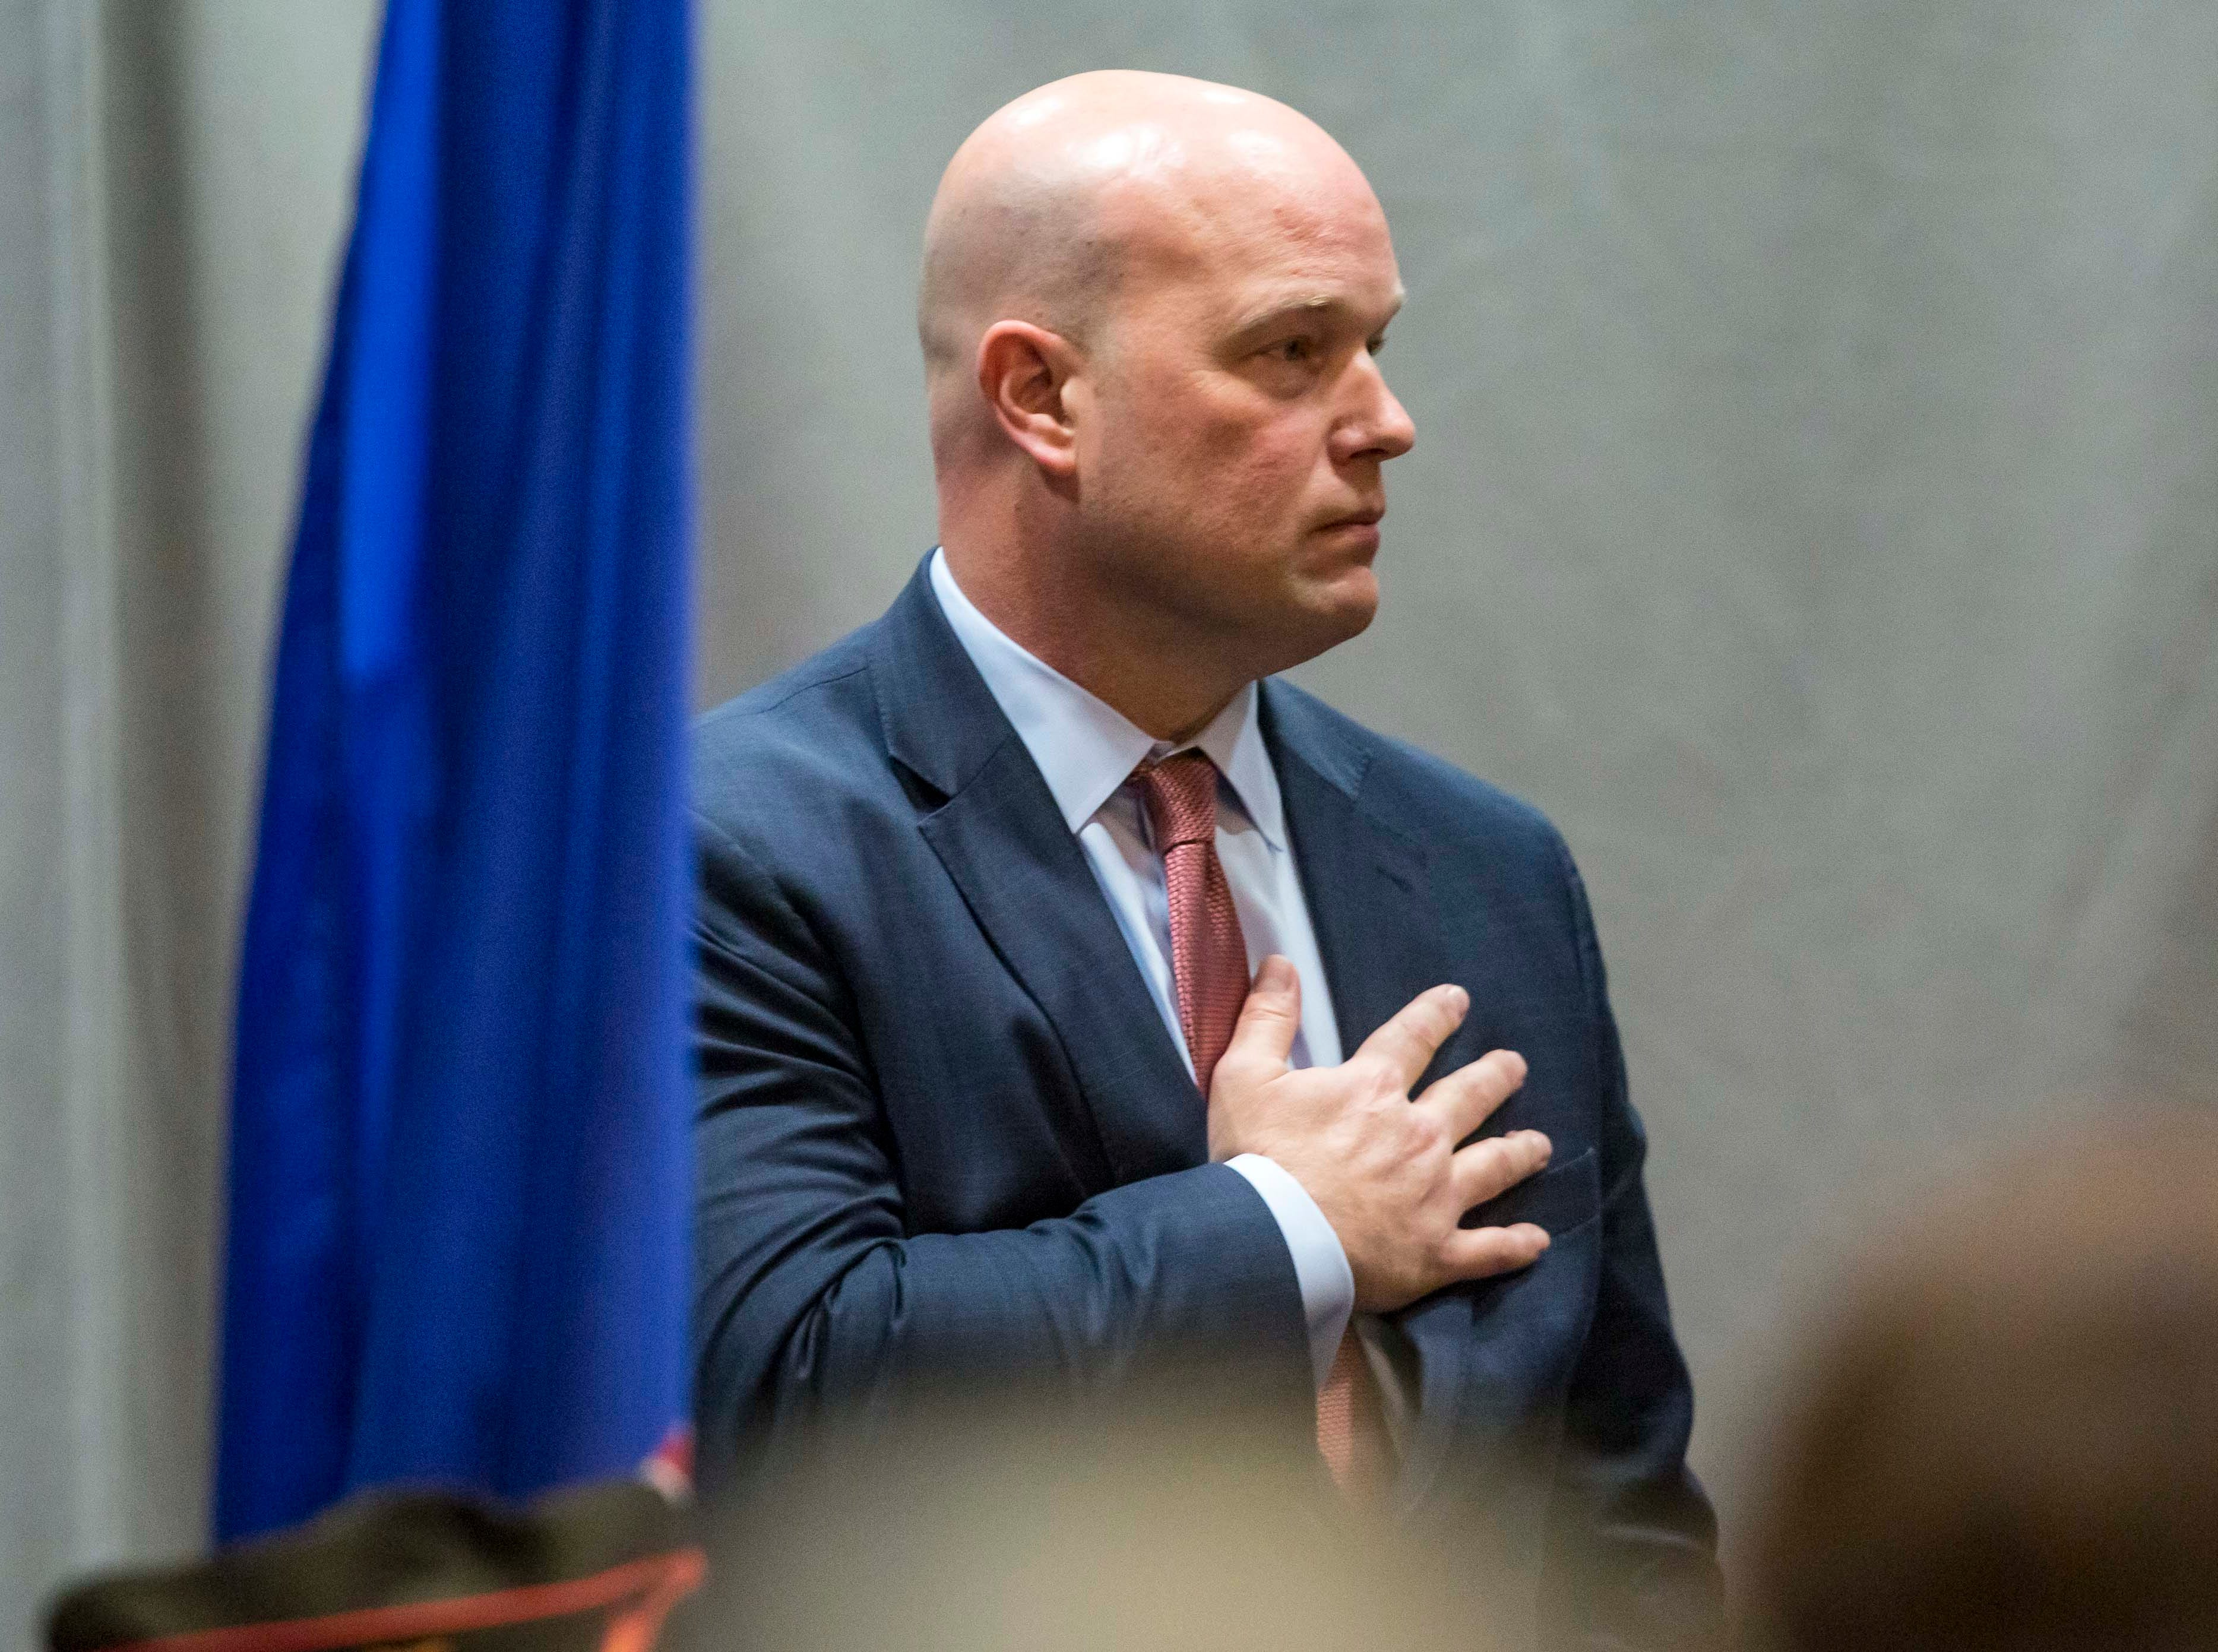 Acting Attorney General Matt Whitaker gives remarks Wed. Nov 14, 2018, at the  Rural and Tribal Elder Justice Summit in Des Moines, Iowa.